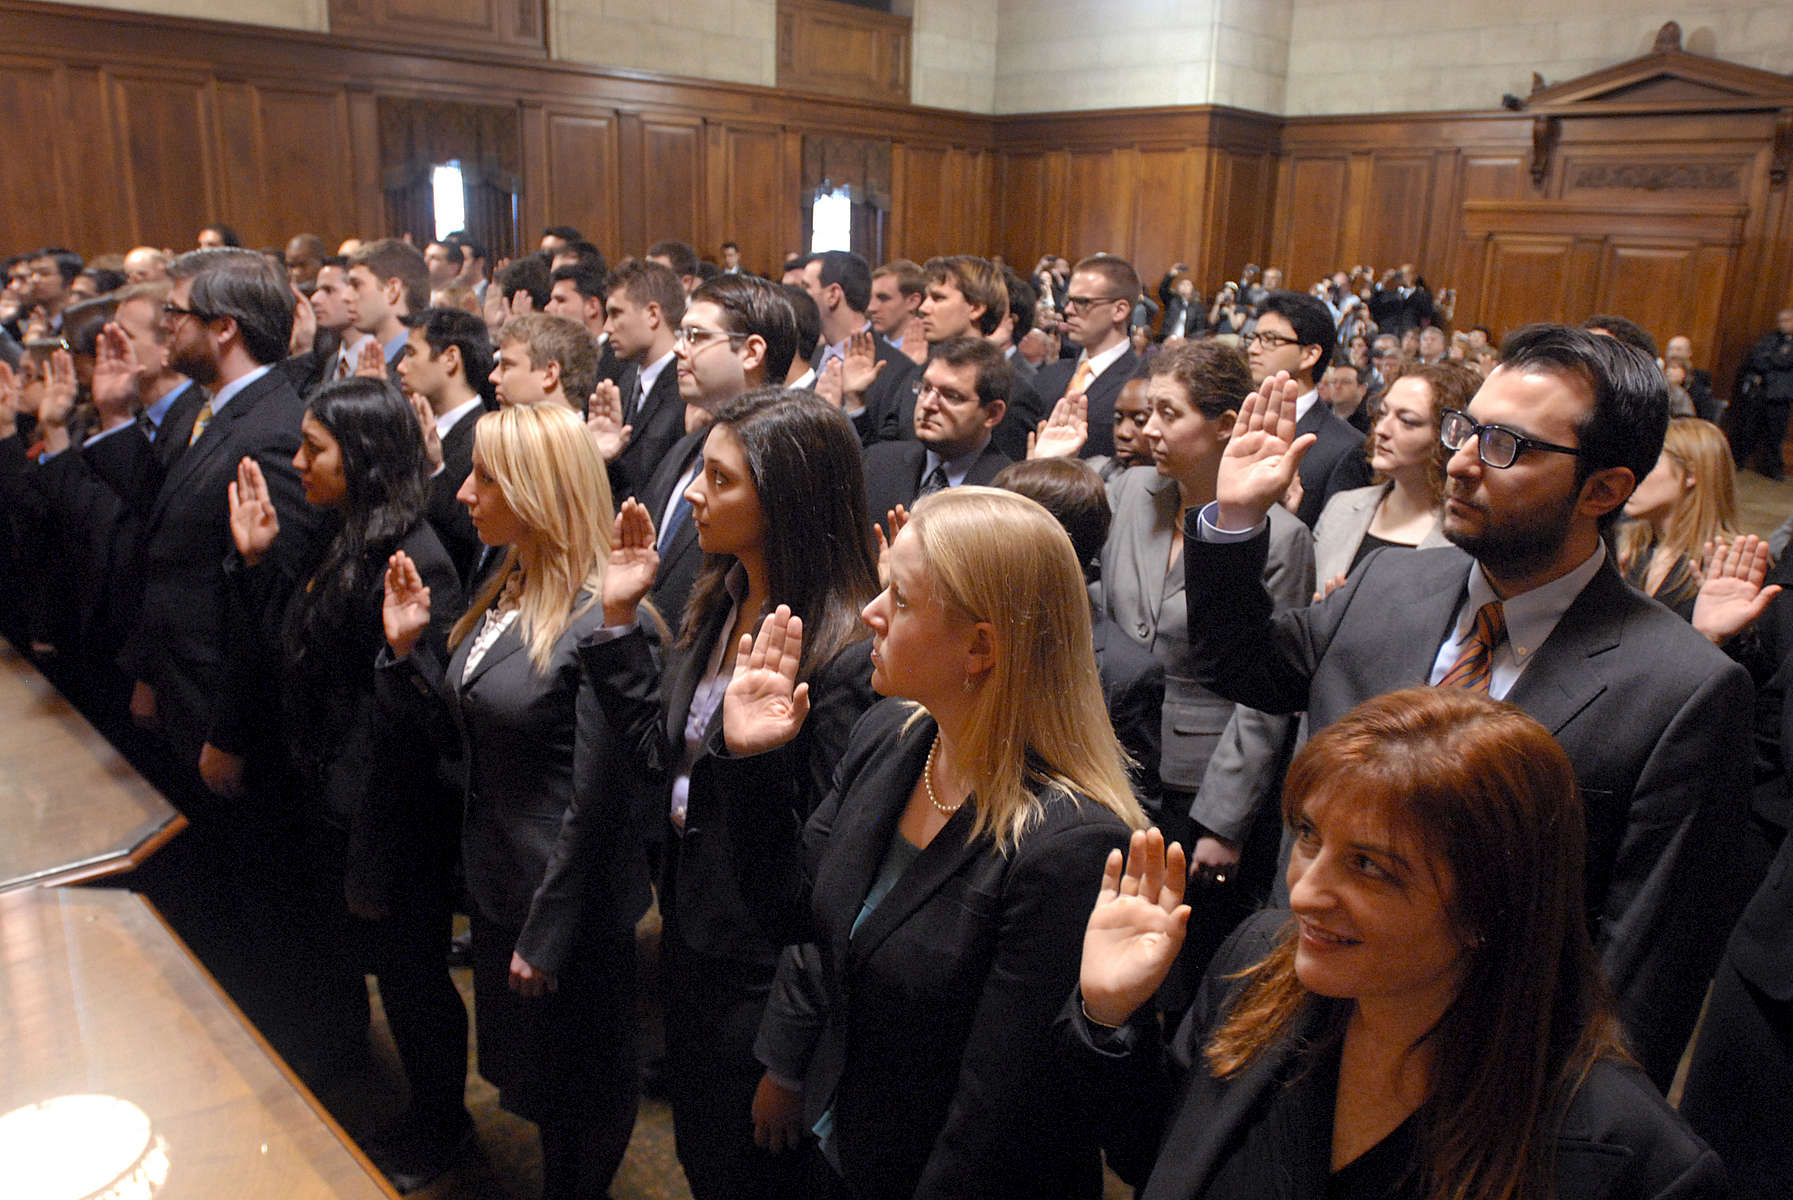 New attorneys being sworn in, Appellate Division, Second Department - January, 2012